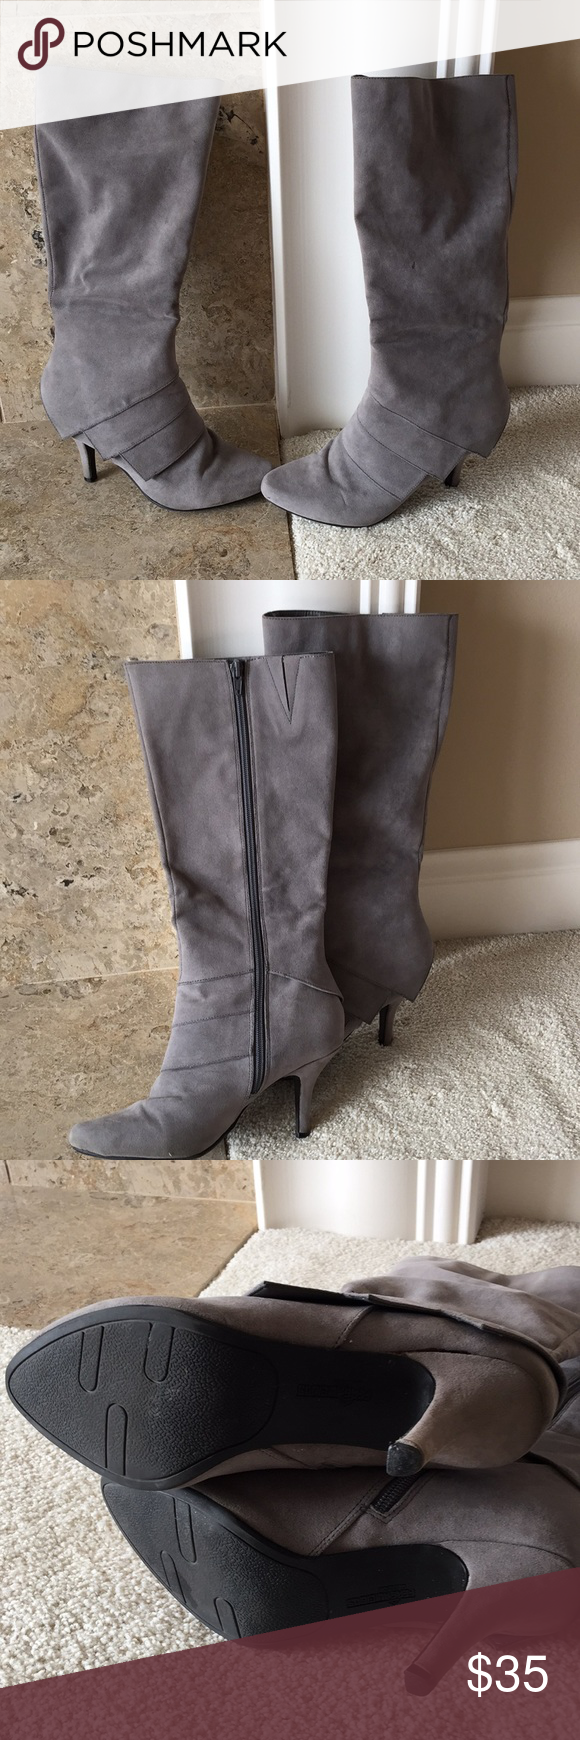 c4540da7c24 Fergalicious Grey High Boots Just below the knee boots. Zip on side from  bottom to top. 2 inch heels. Fergalicious Shoes Heeled Boots